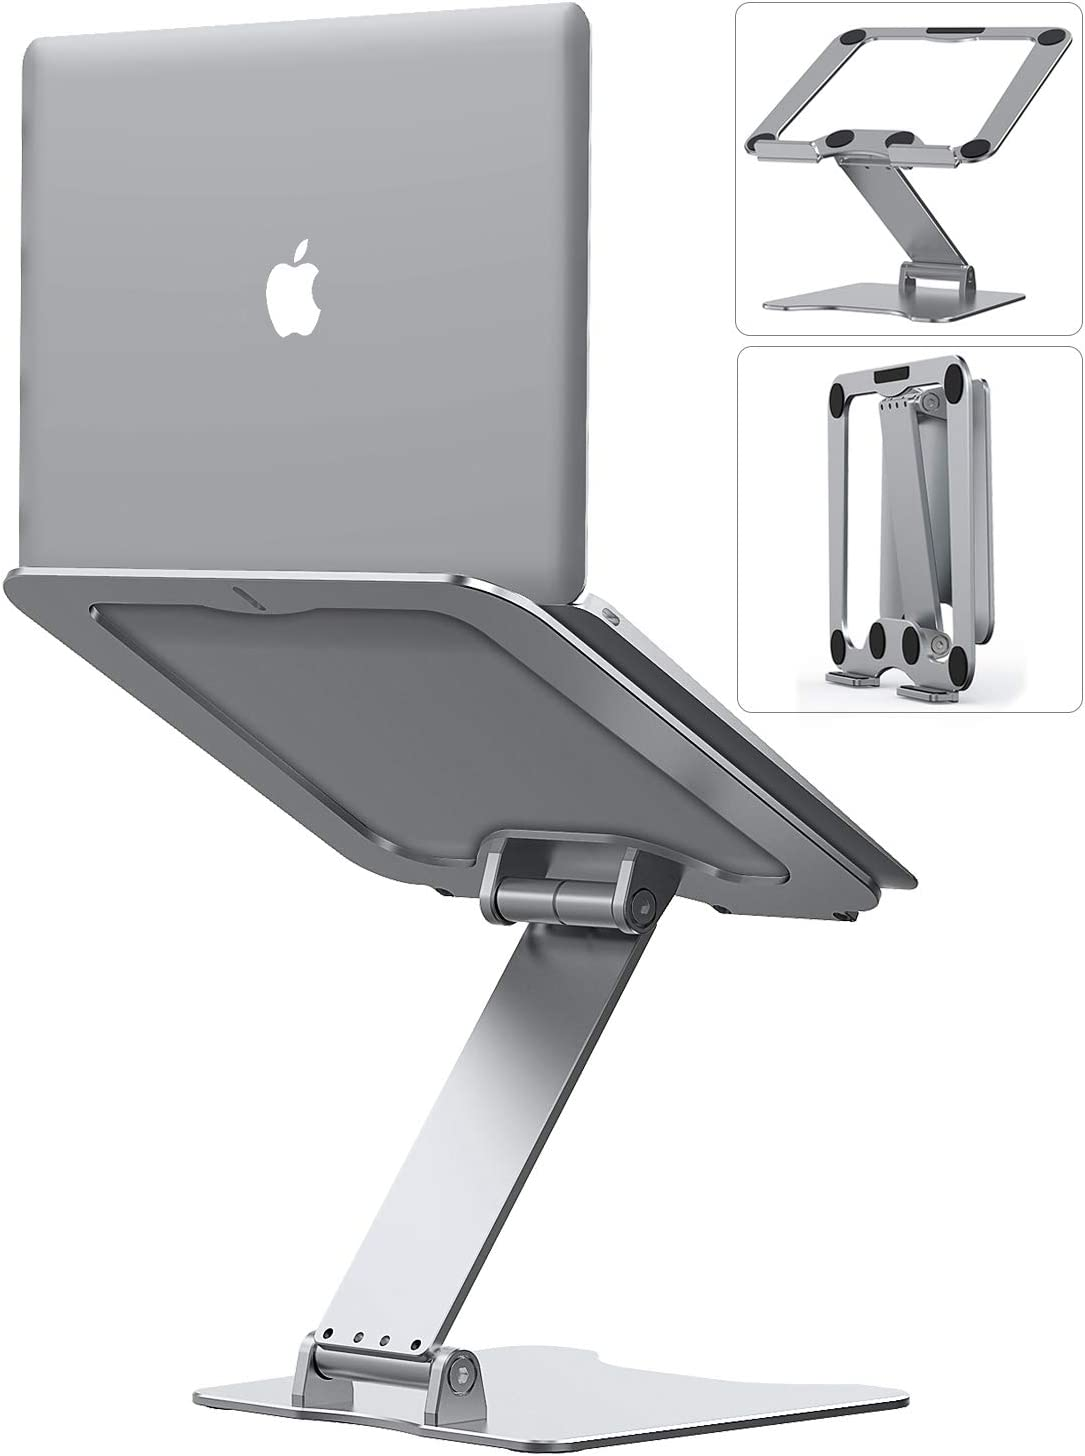 "Laptop Stand, Letlar Laptop Holder, Aluminum Laptop Riser Stand for Desk, Adjustable Height 1.9""-13.8"", Compatible with MacBook, Dell, HP, Lenovo, All Laptops 8-17 Inches, Supports up to 44Lbs-Silver"